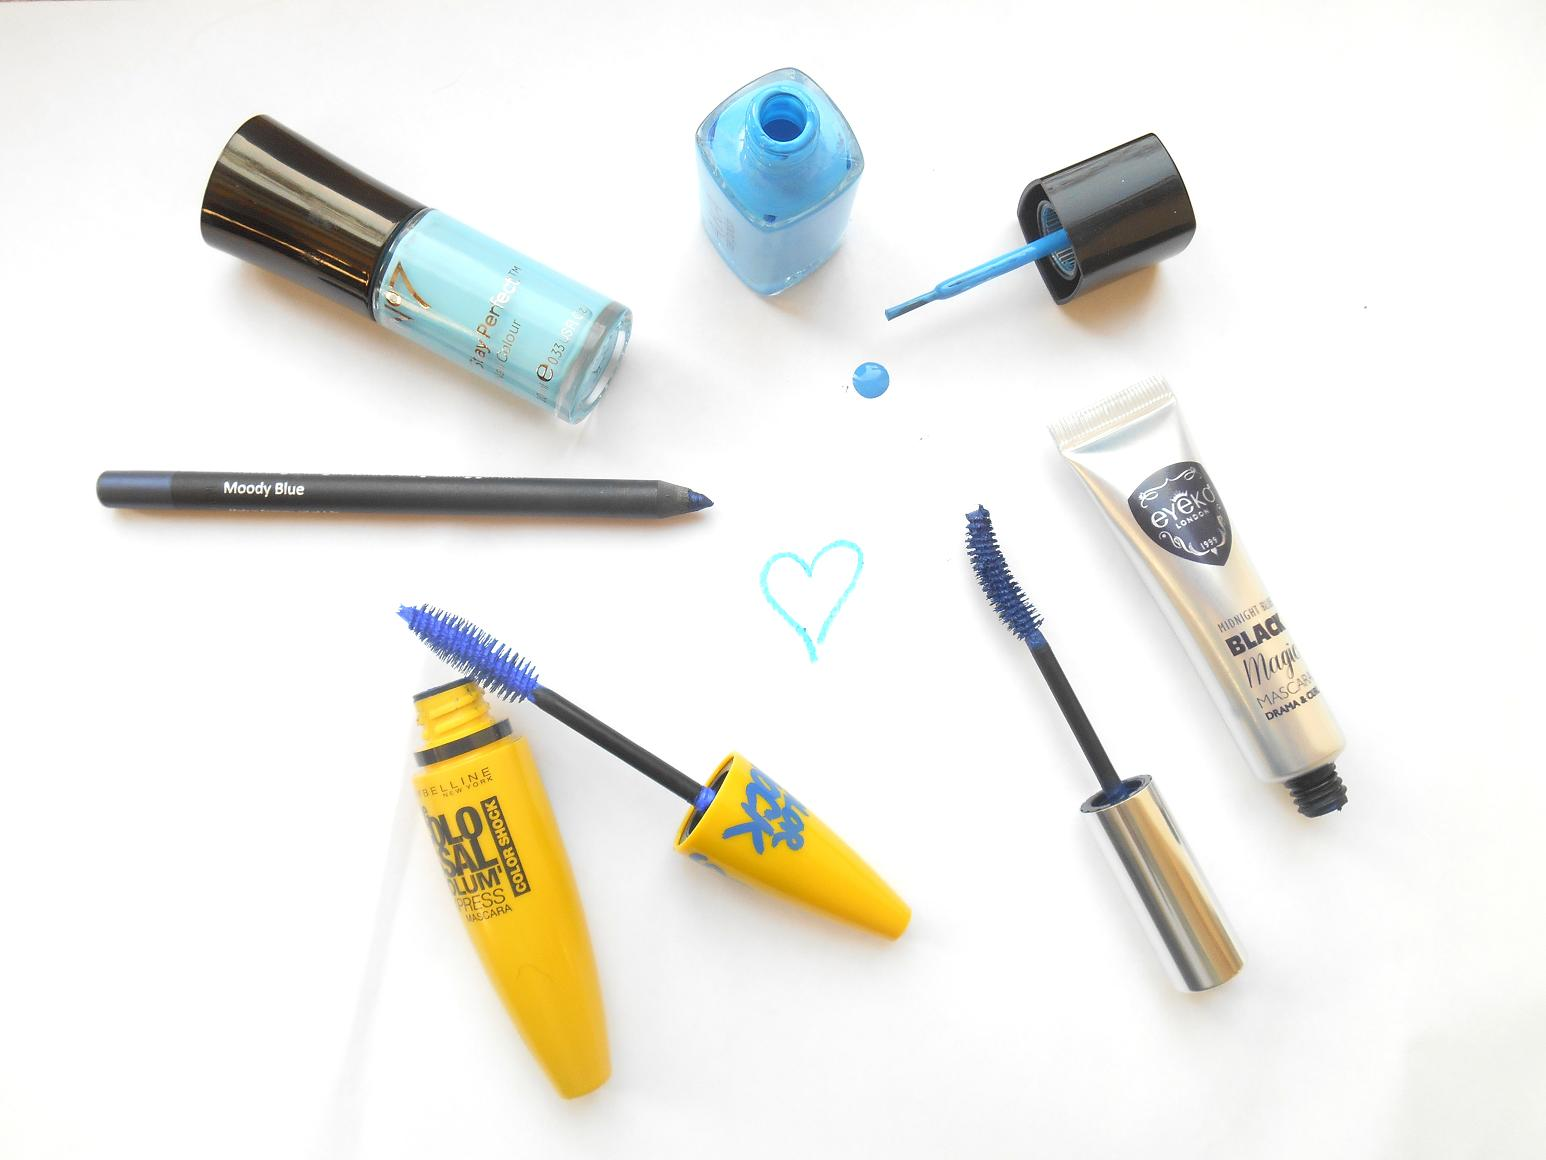 tips for trying new beauty trends on a budget